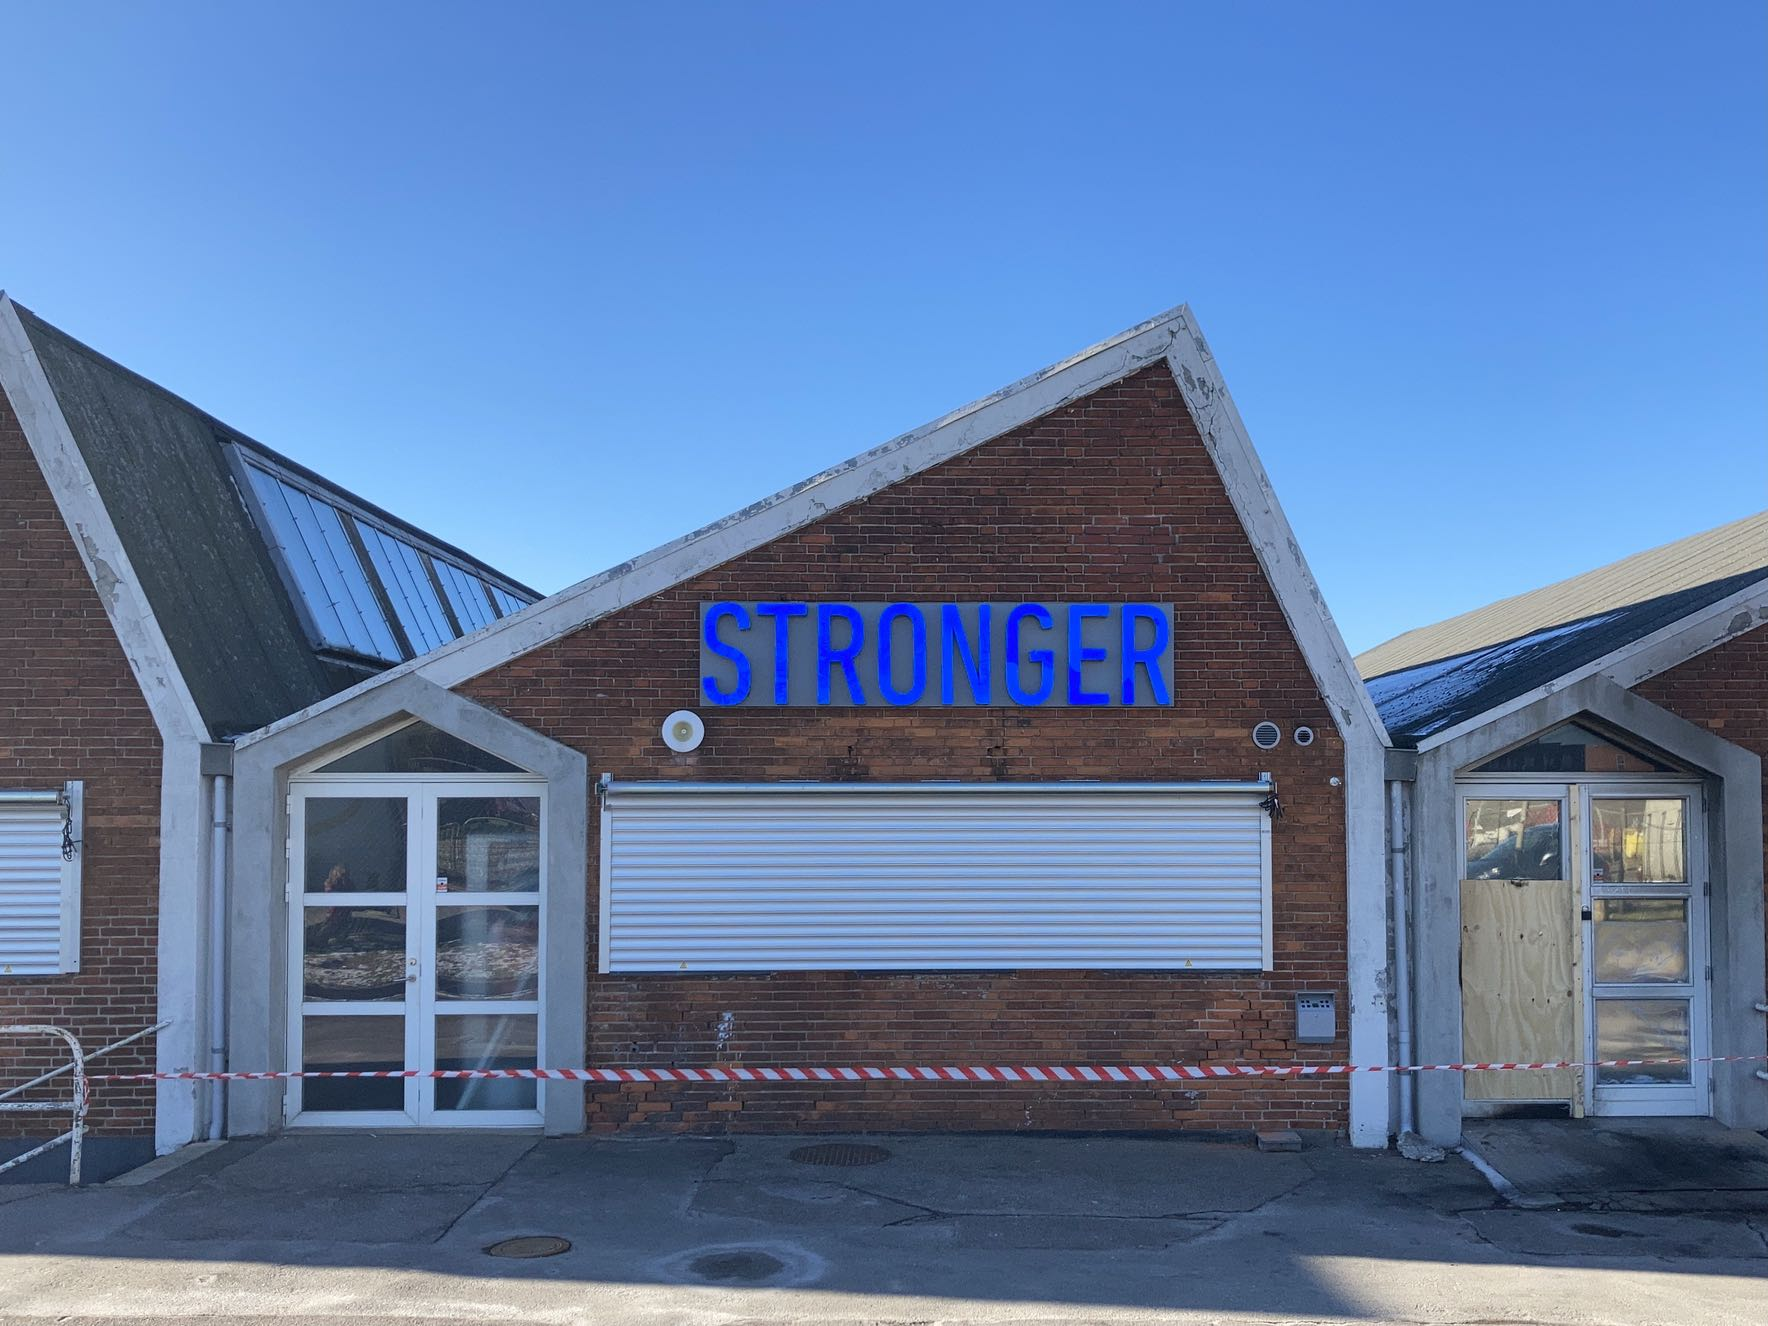 STRONGER – in deep neon blue, echoed in a purer framing sky. On a building that's somewhat challenged, cordoned off with red and white-striped tape.